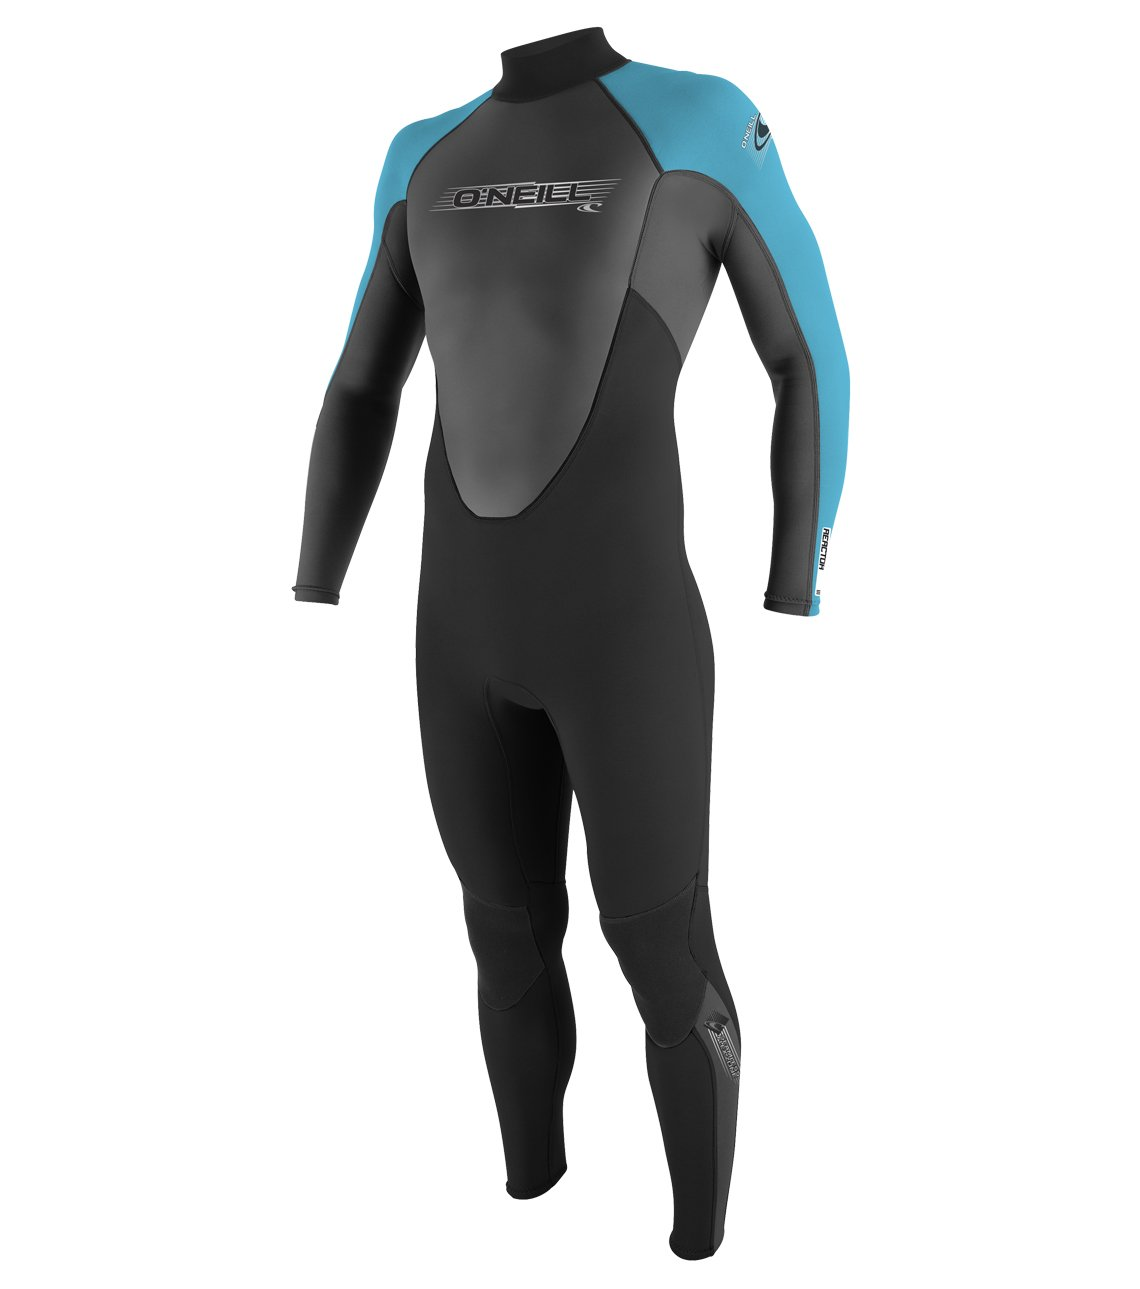 O'Neill Youth Reactor 3/2mm Back Zip Full Wetsuit, Black/Graphite/Turquoise, 10